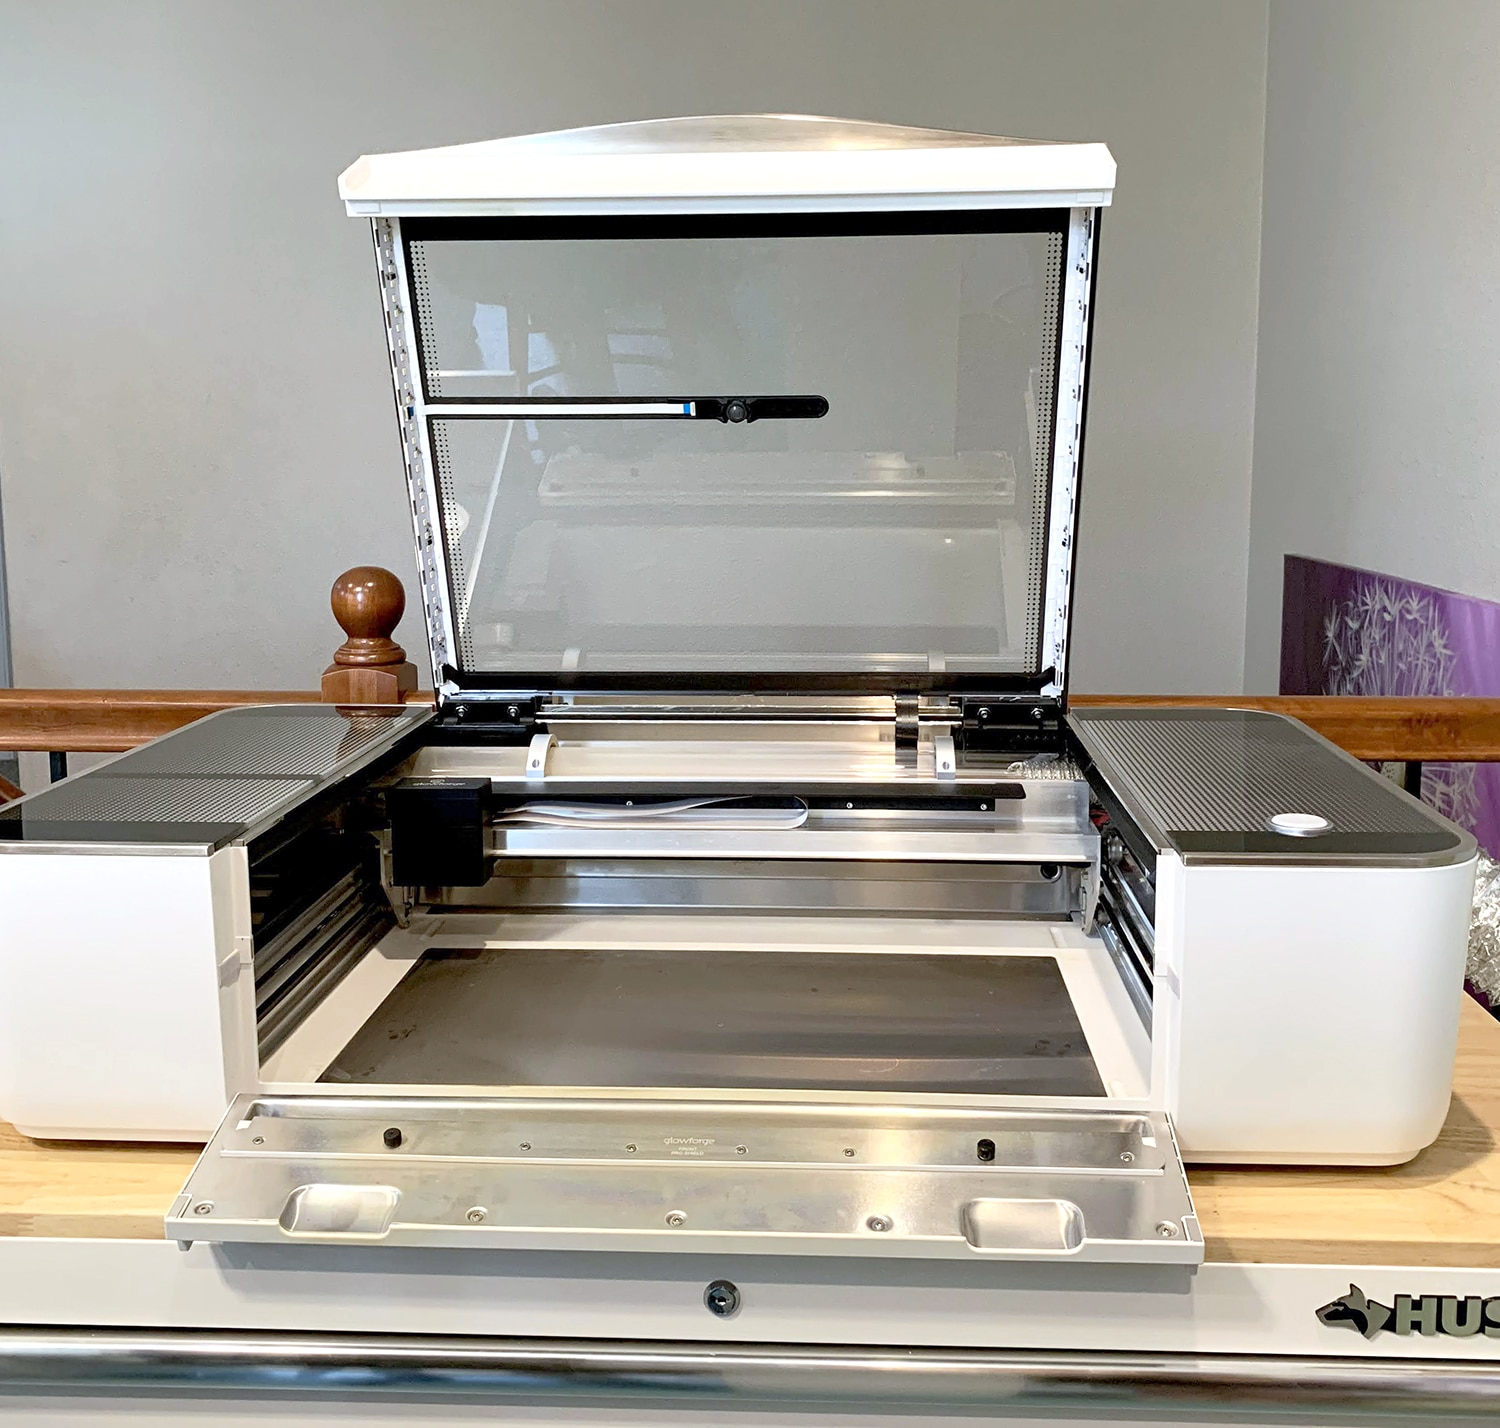 Open Glowforge Pro machine with Crumb Tray Removed